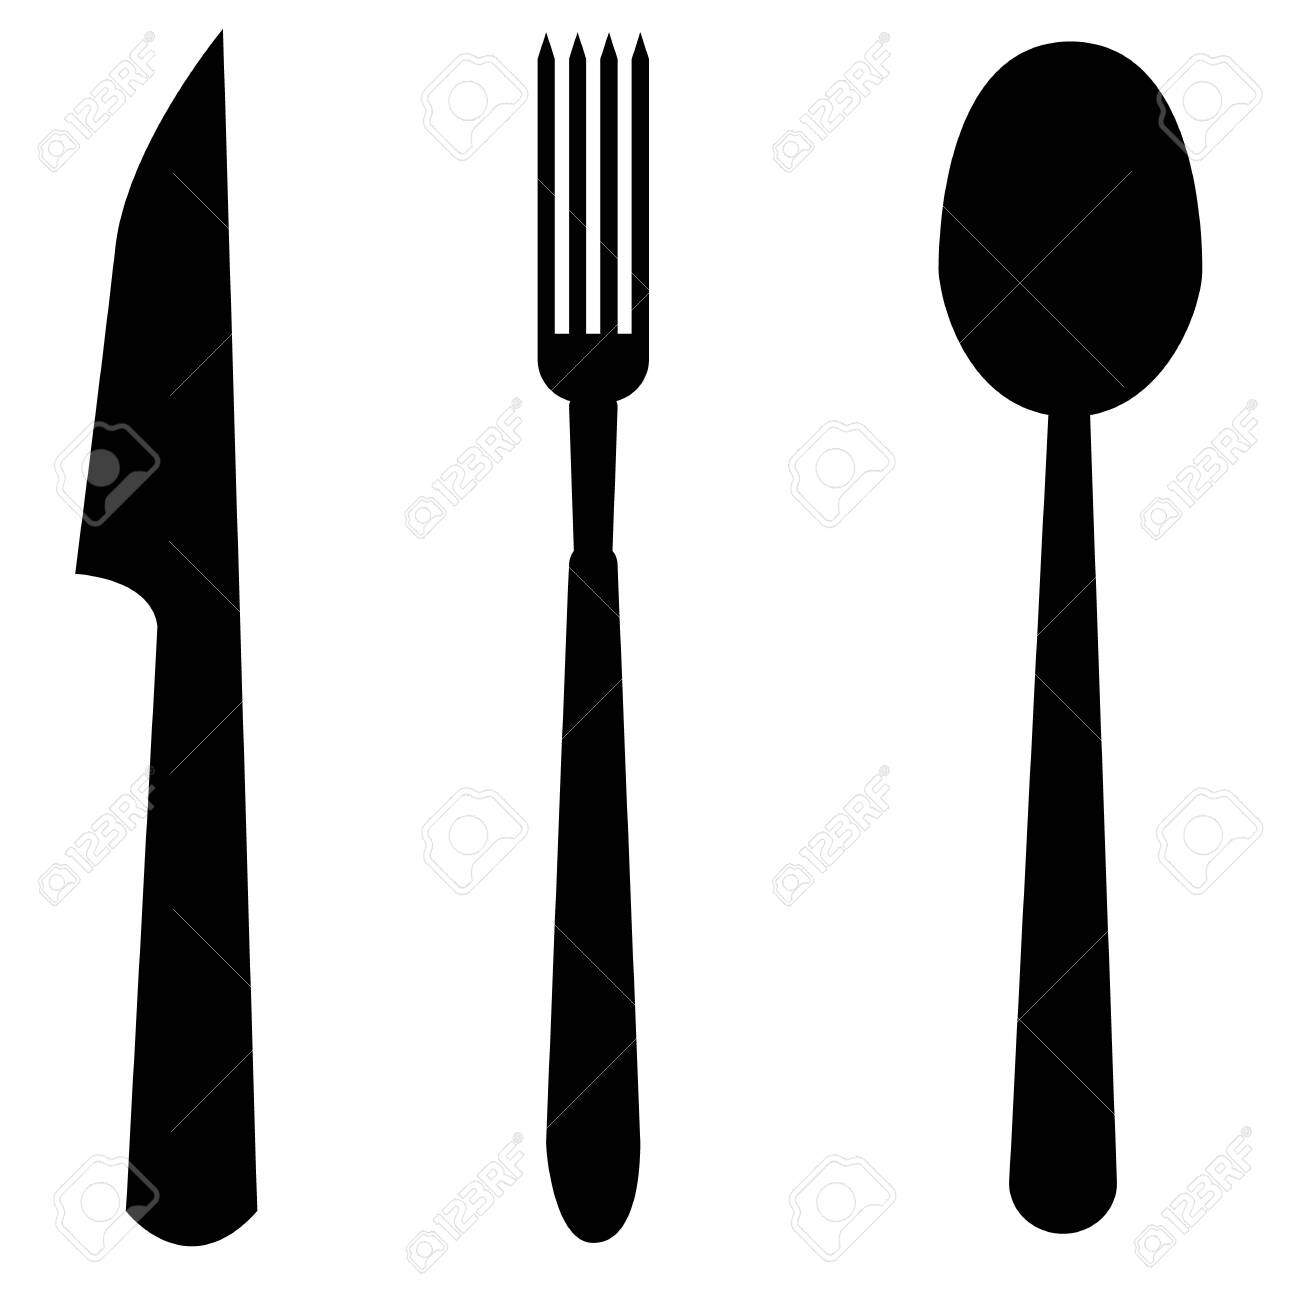 spoon, fork and knife icon on white background. flat style. cutlery symbol. kitchen sign. - 133620609